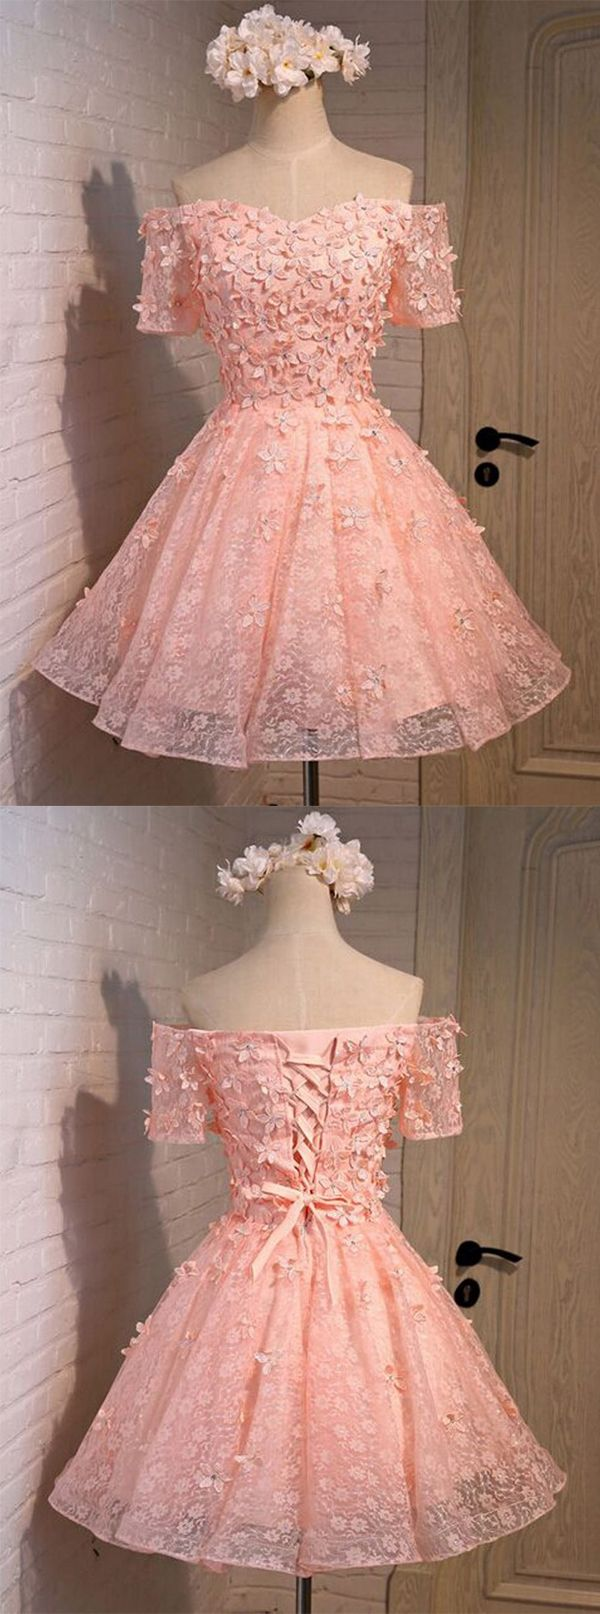 A-line Off-the-shoulder Short/Mini Coral Lace Homecoming Dress With Appliques…